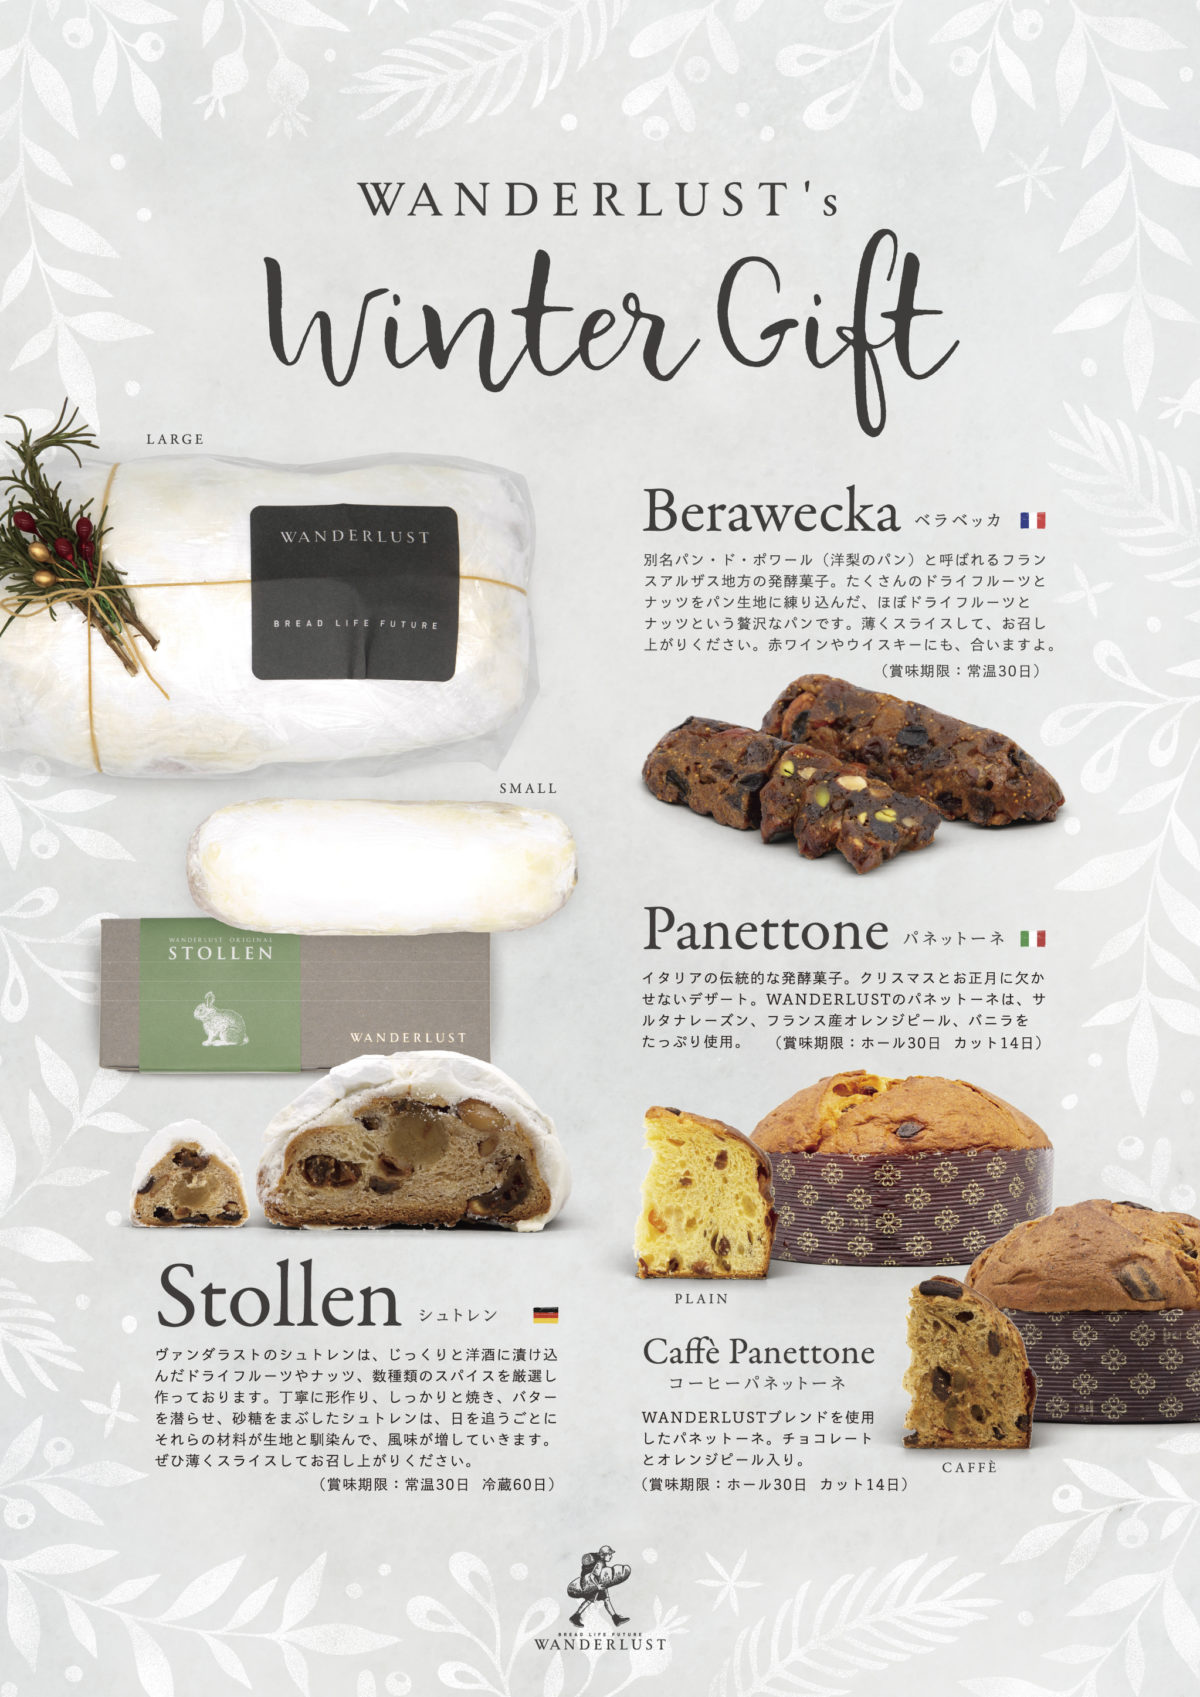 WANDERLUST's Winter Giftのご紹介